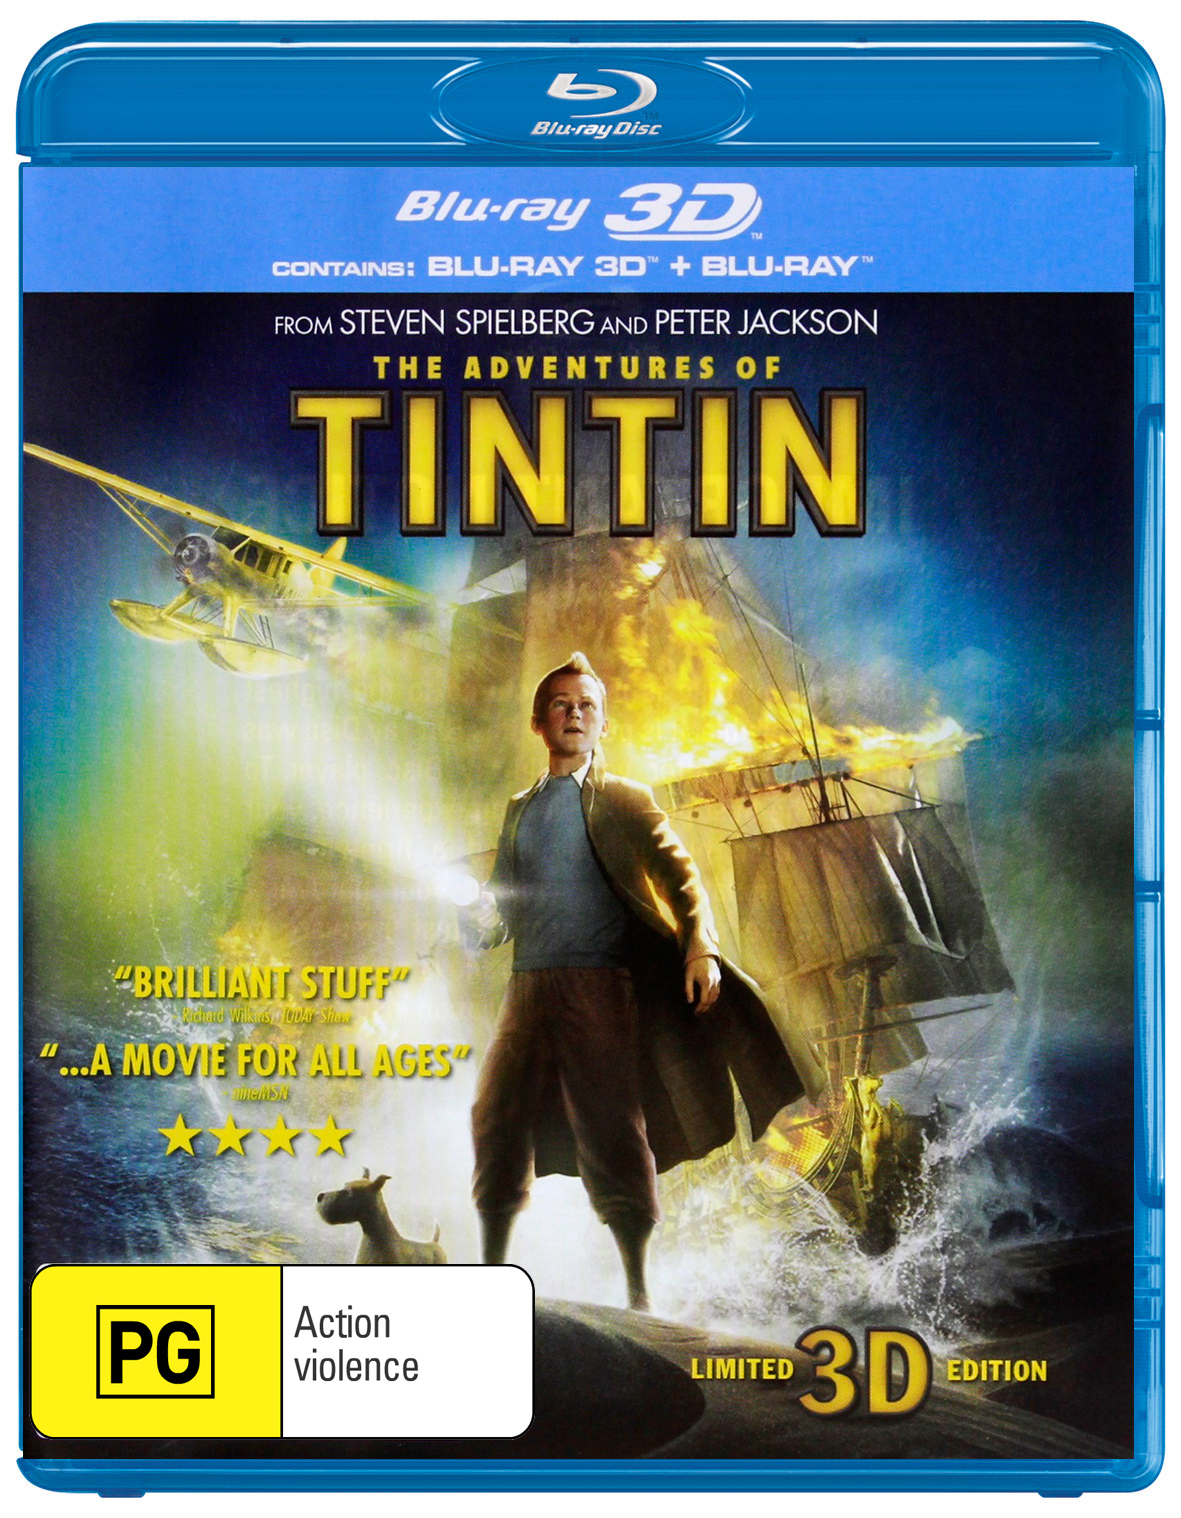 The Adventures of Tintin: Secret of the Unicorn on Blu-ray, 3D Blu-ray image